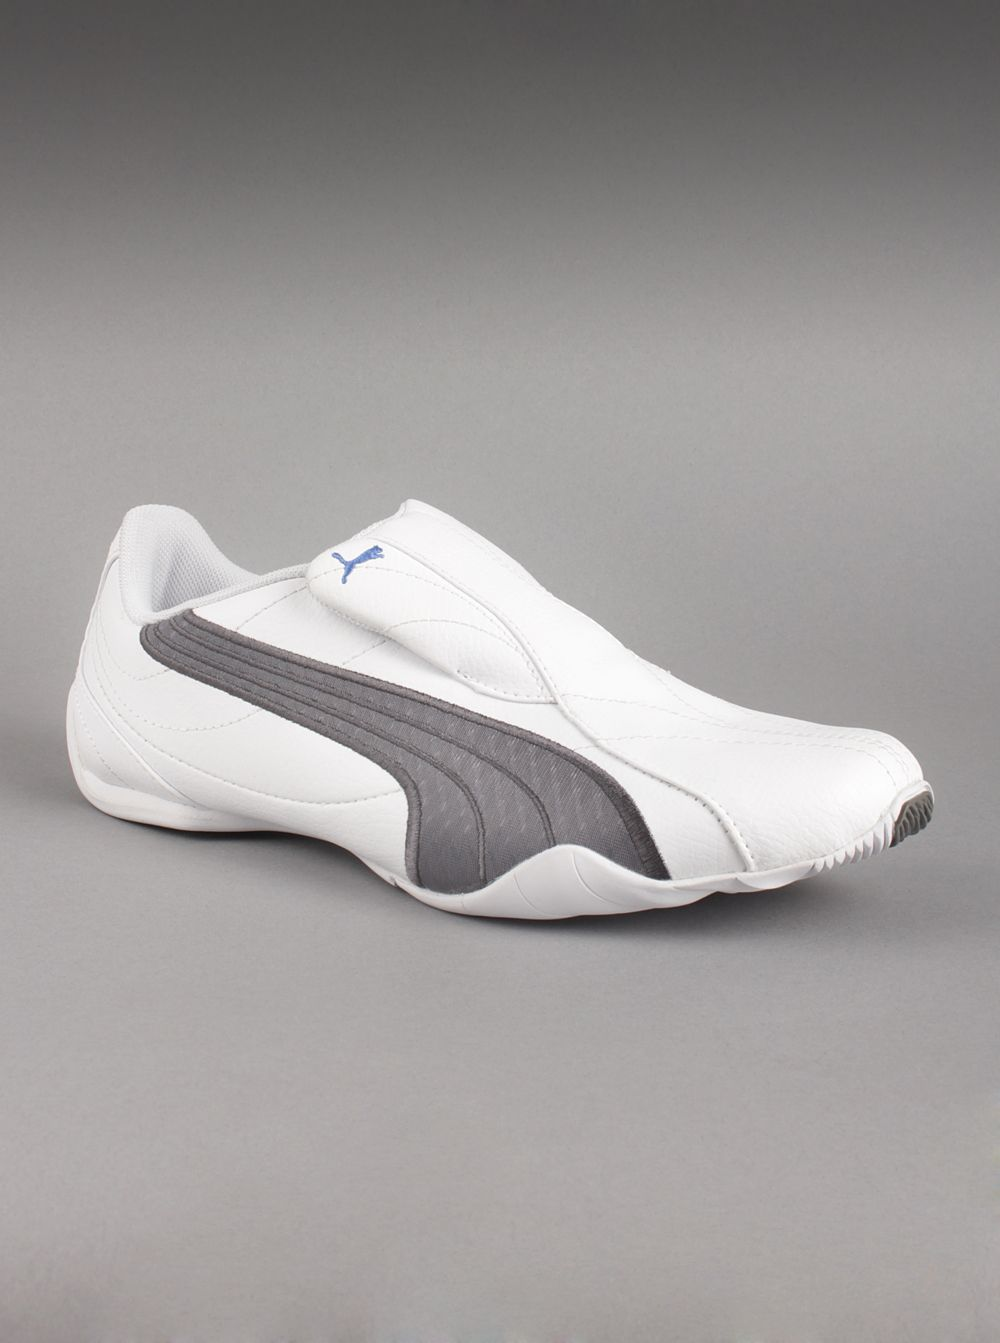 10af35223ef Puma® Men s Tergament Sport Sneakers in White Grey Stripe. If you enjoy a  futuristic look with a low profile design